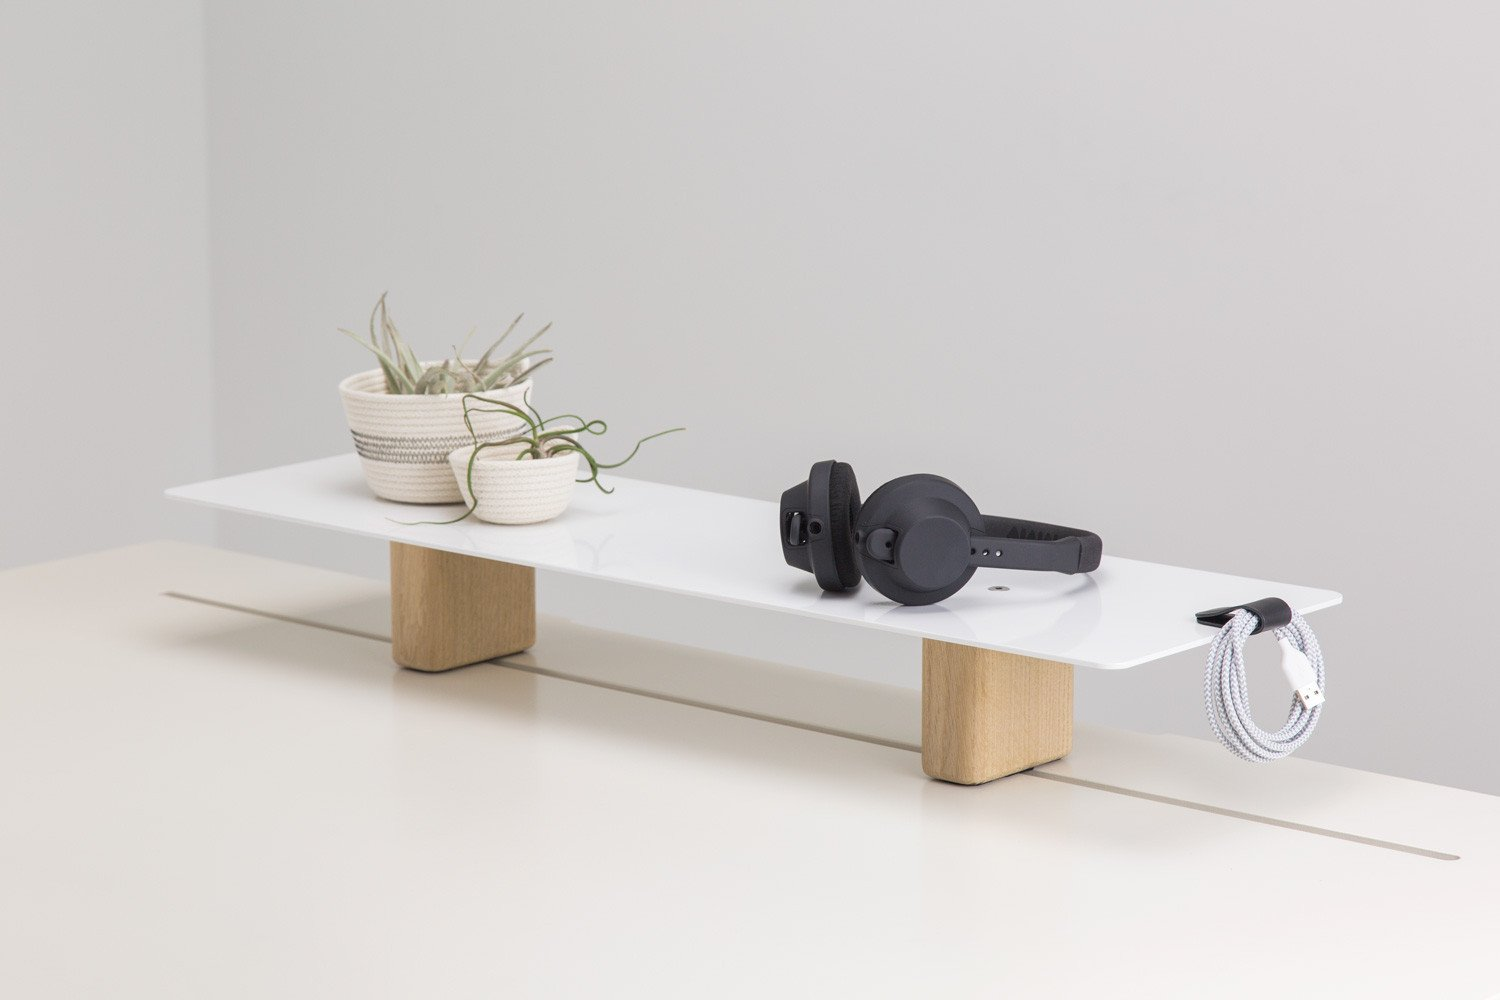 The Artic Fox Large Desk Stand